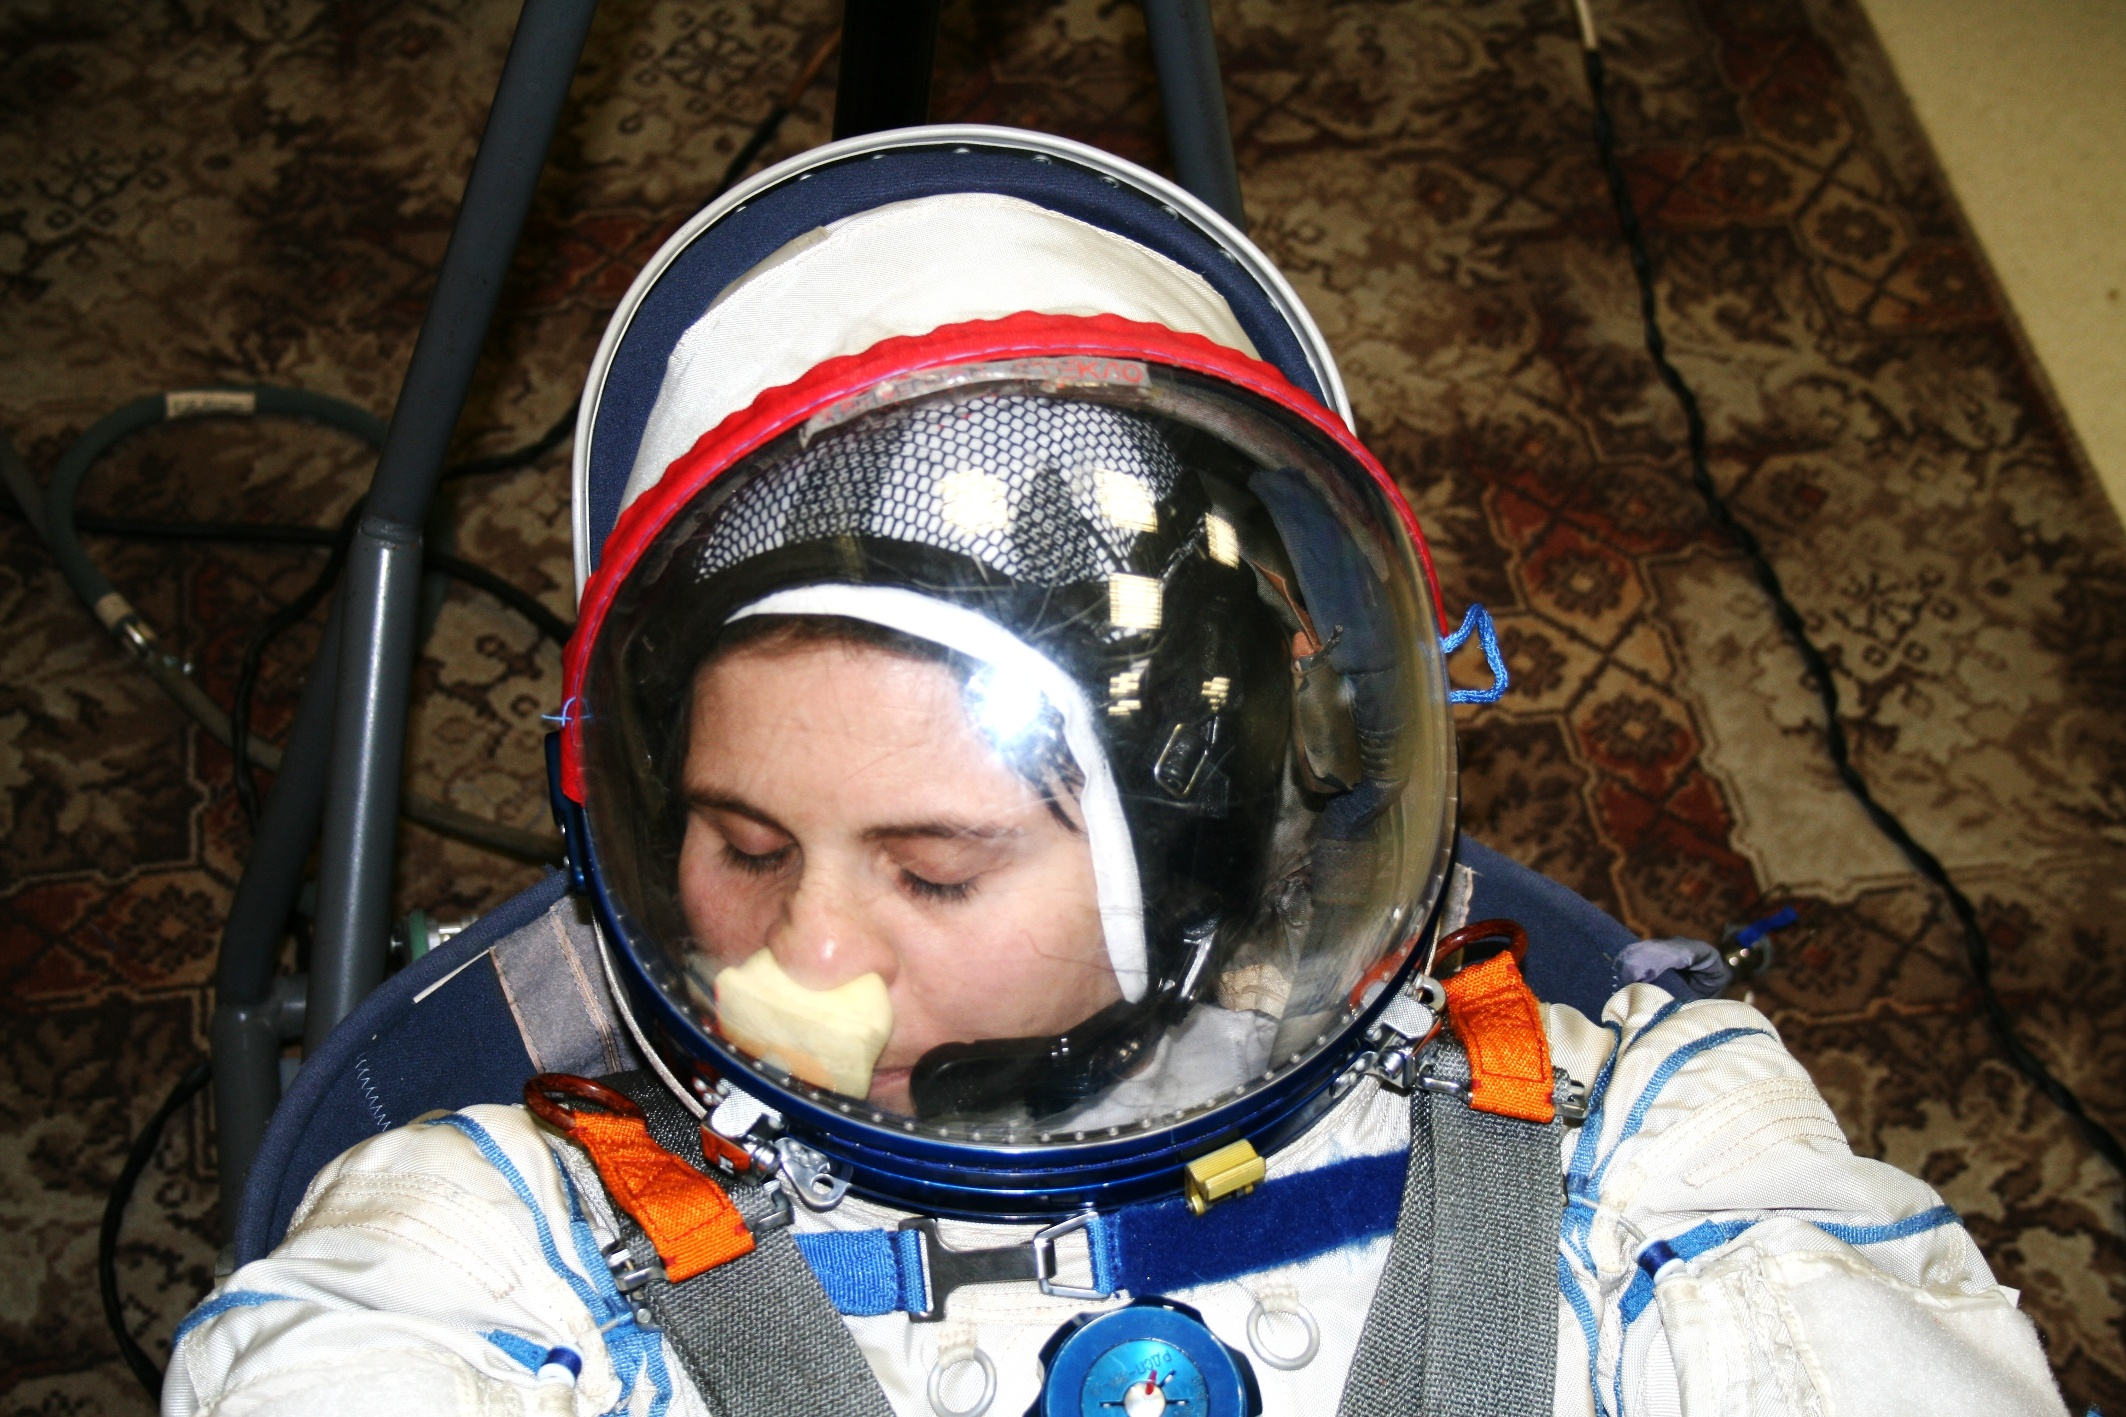 How Do Astronauts Scratch an Itch When In Their Space Suits?